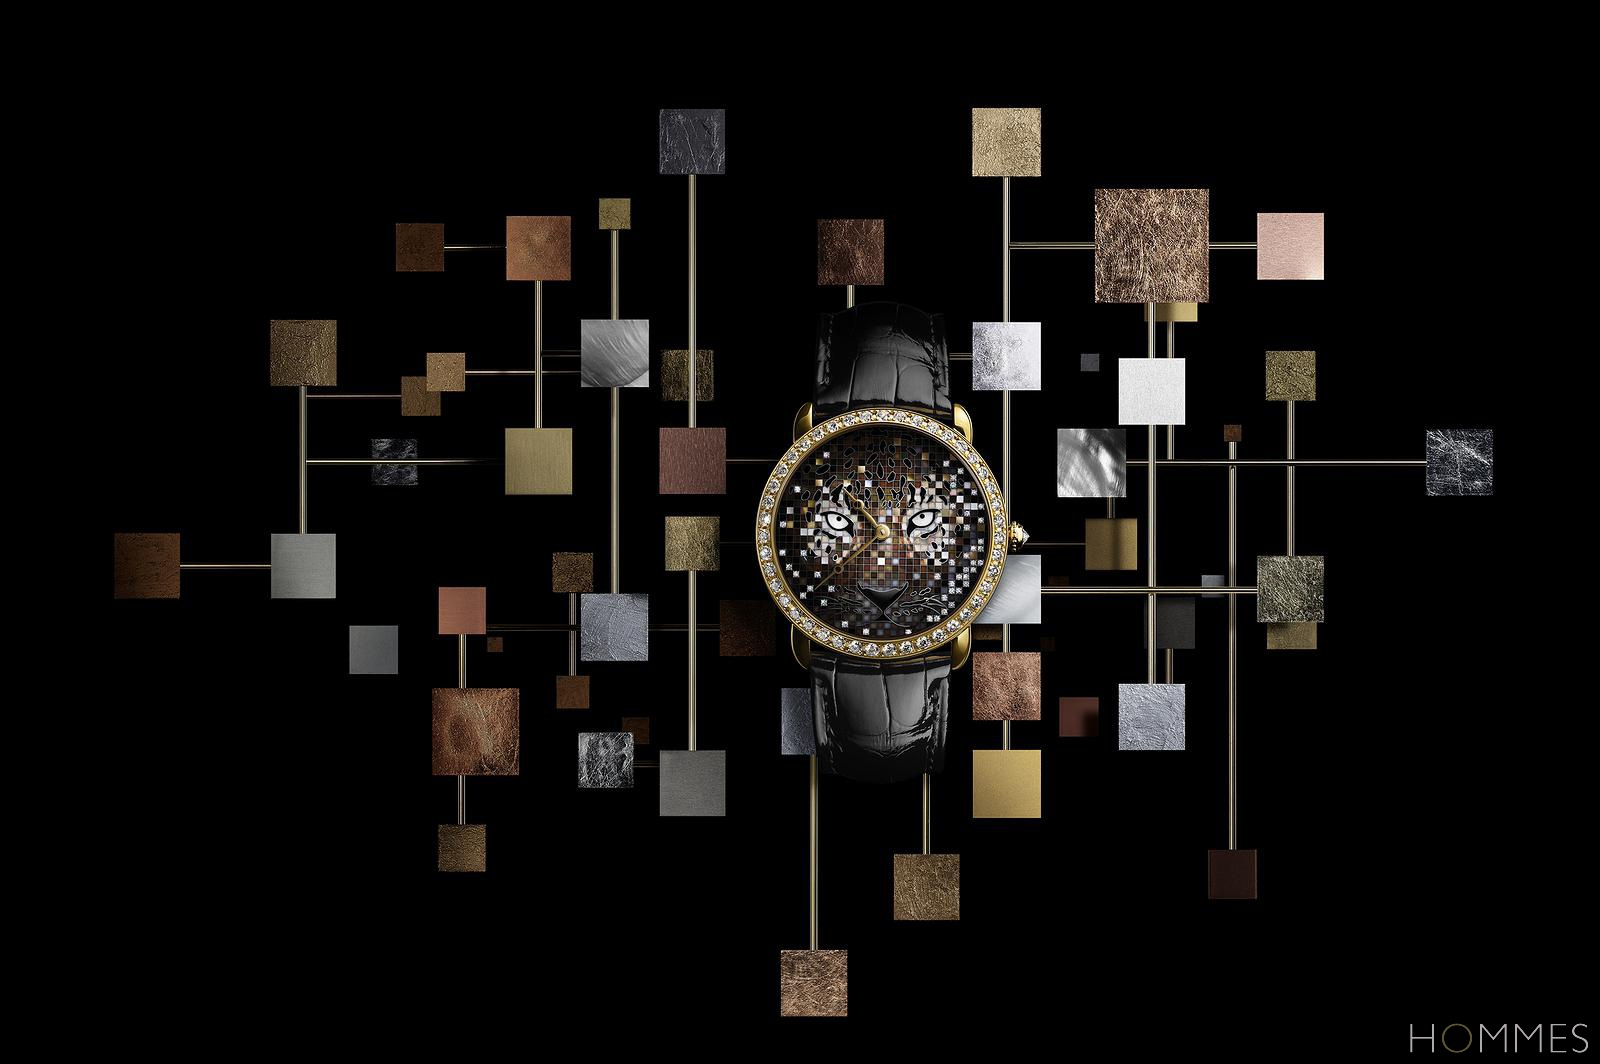 02_CARTIER_SIHH2019_PANTHERE_FIGURATIVE_HPI01315.jpg